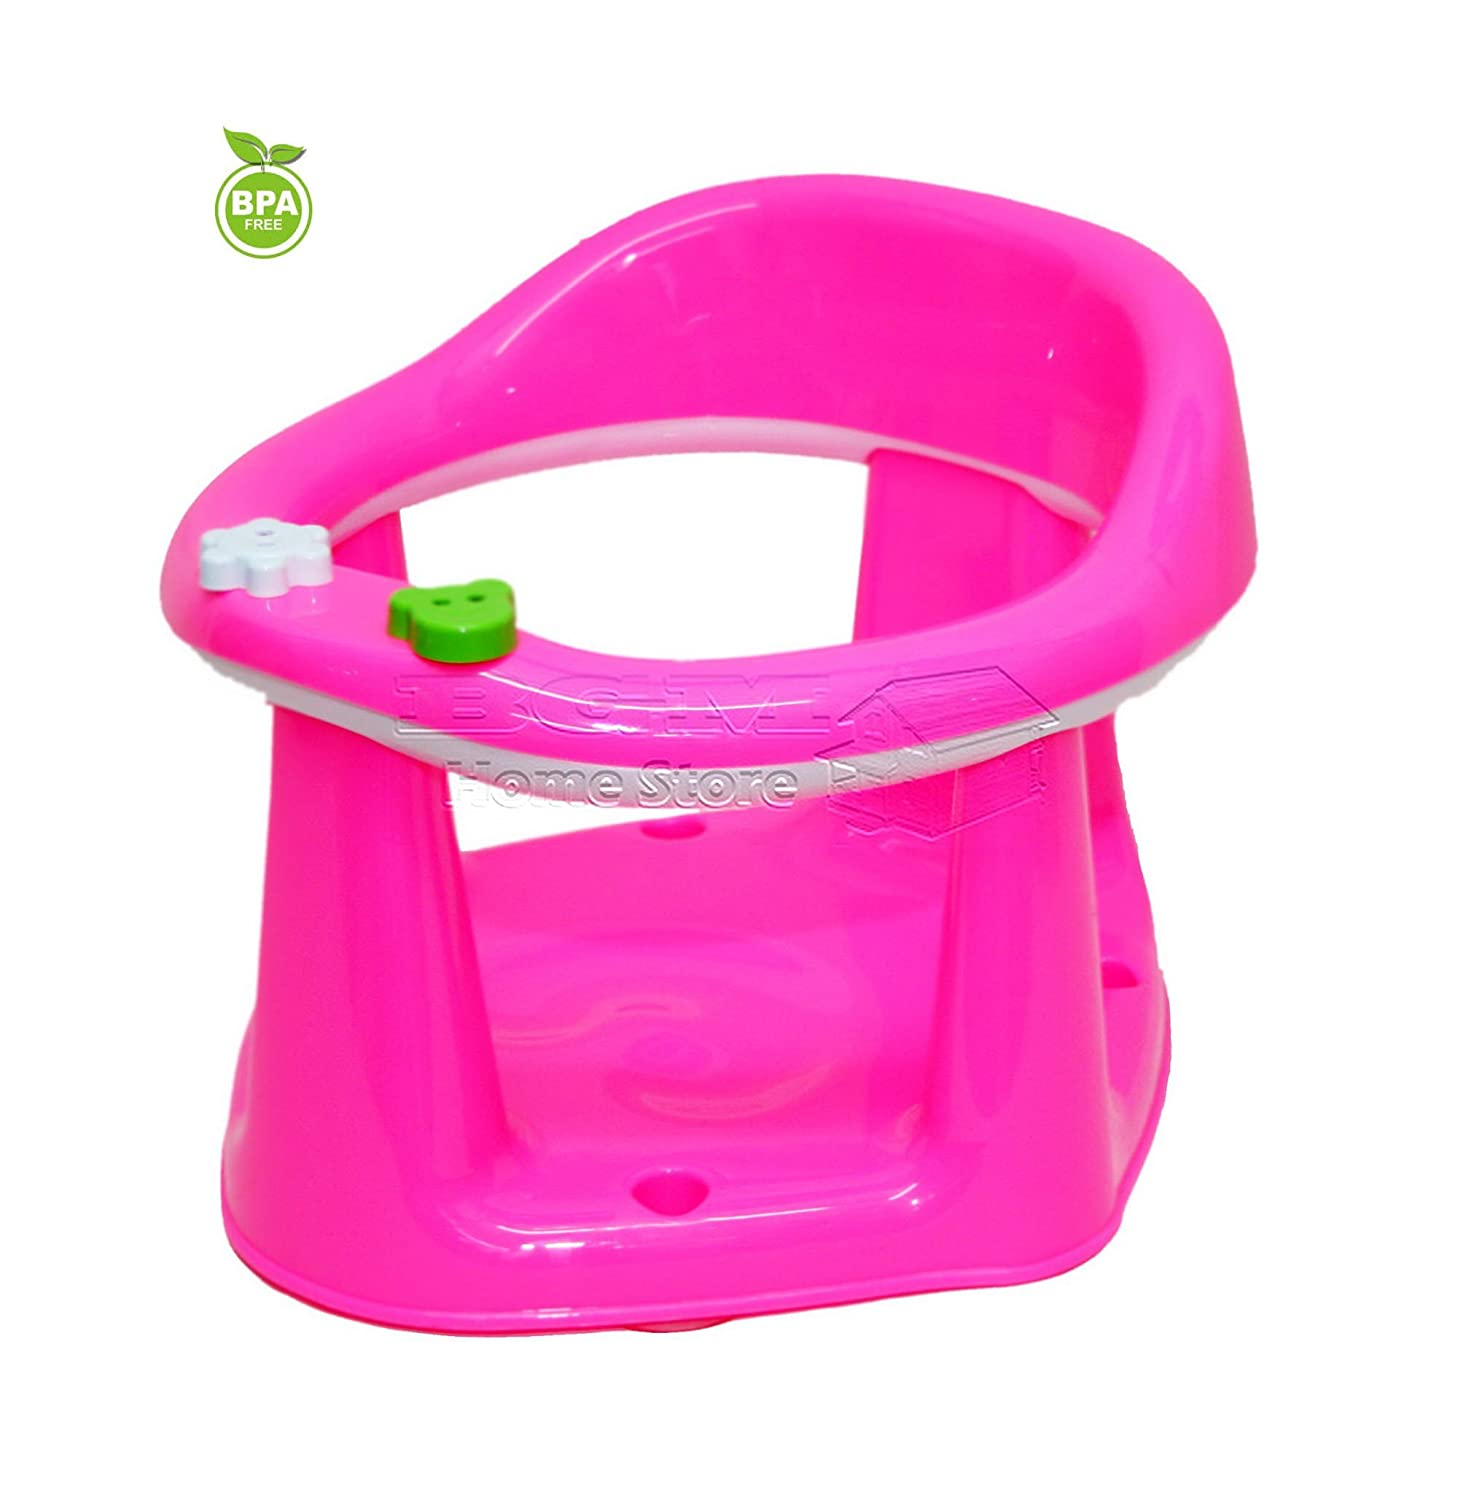 Baby Toddler Child Bath Support Seat Safety Bathing Safe Dinning Play 3 In 1 MWR (GREEN) dunya Plastik